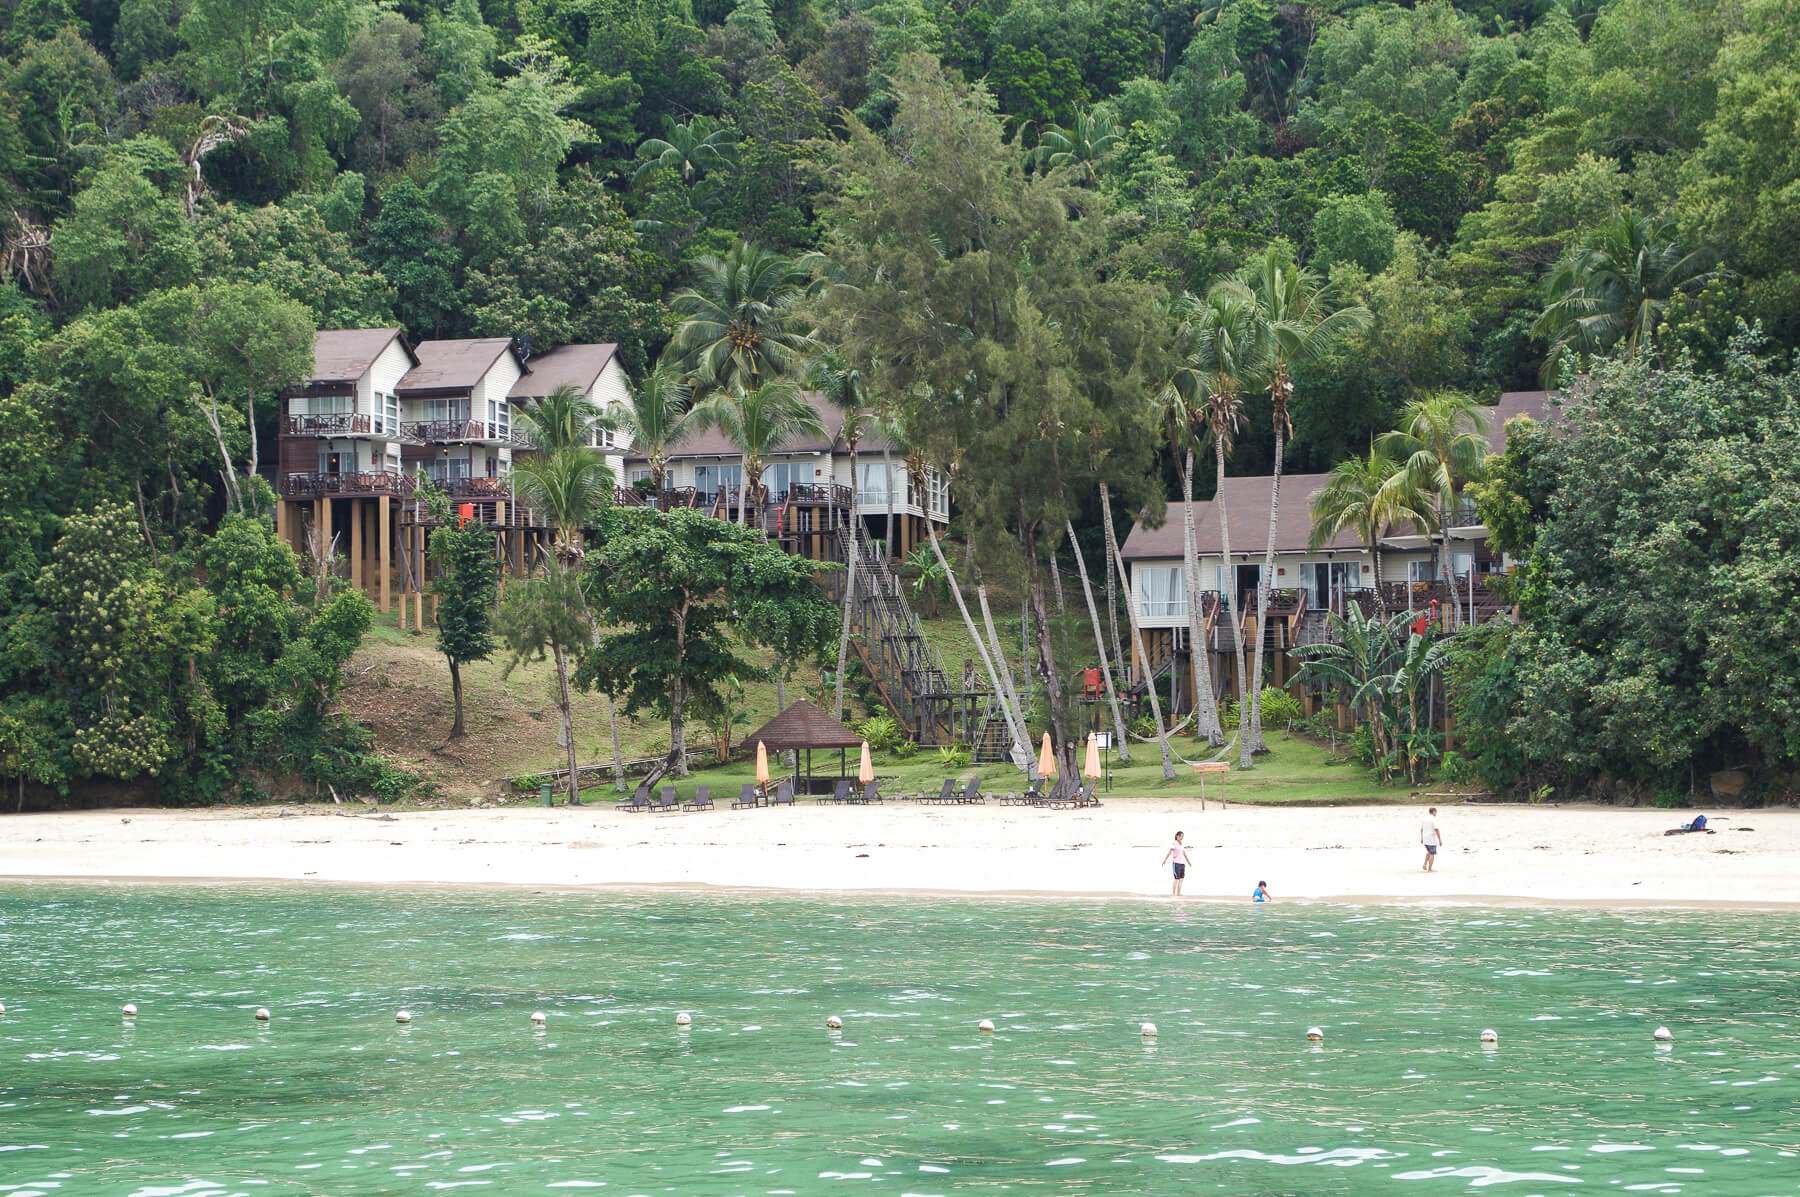 Small villas on stilts in the treetops behind the beach and ocean